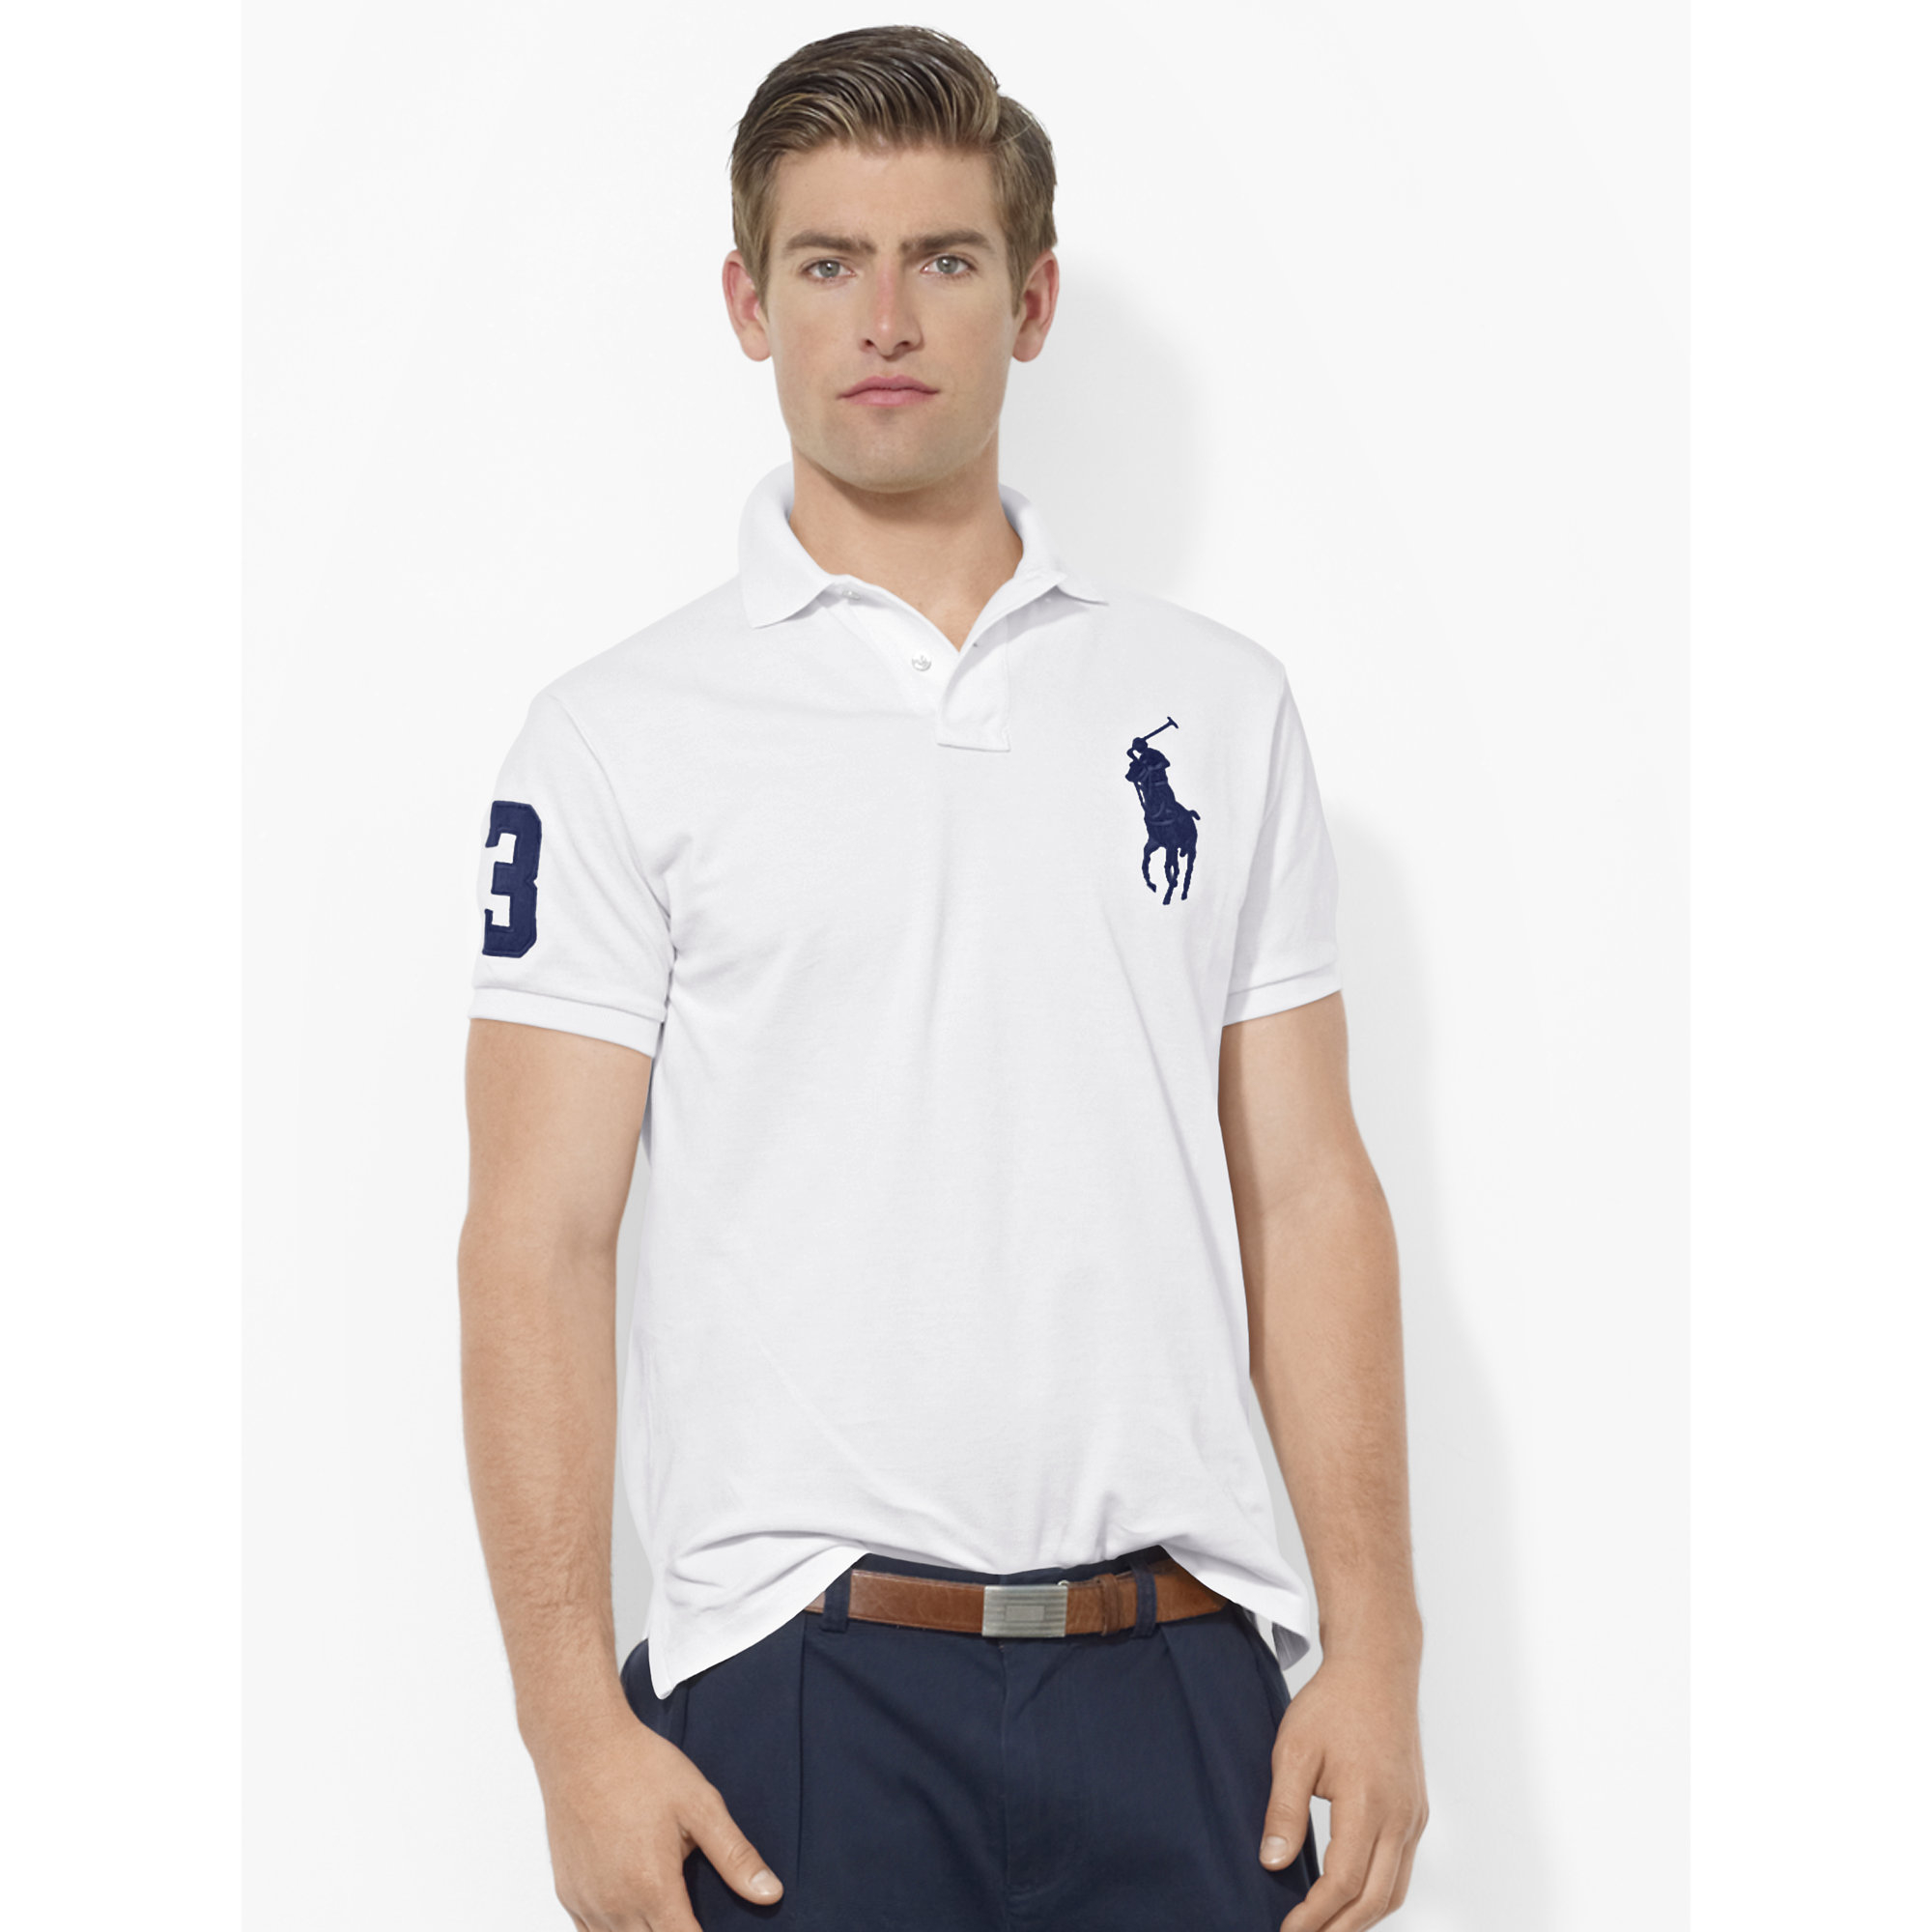 38f4035a50e8 Polo Ralph Lauren Custom-fit Big Pony Polo in White for Men - Lyst